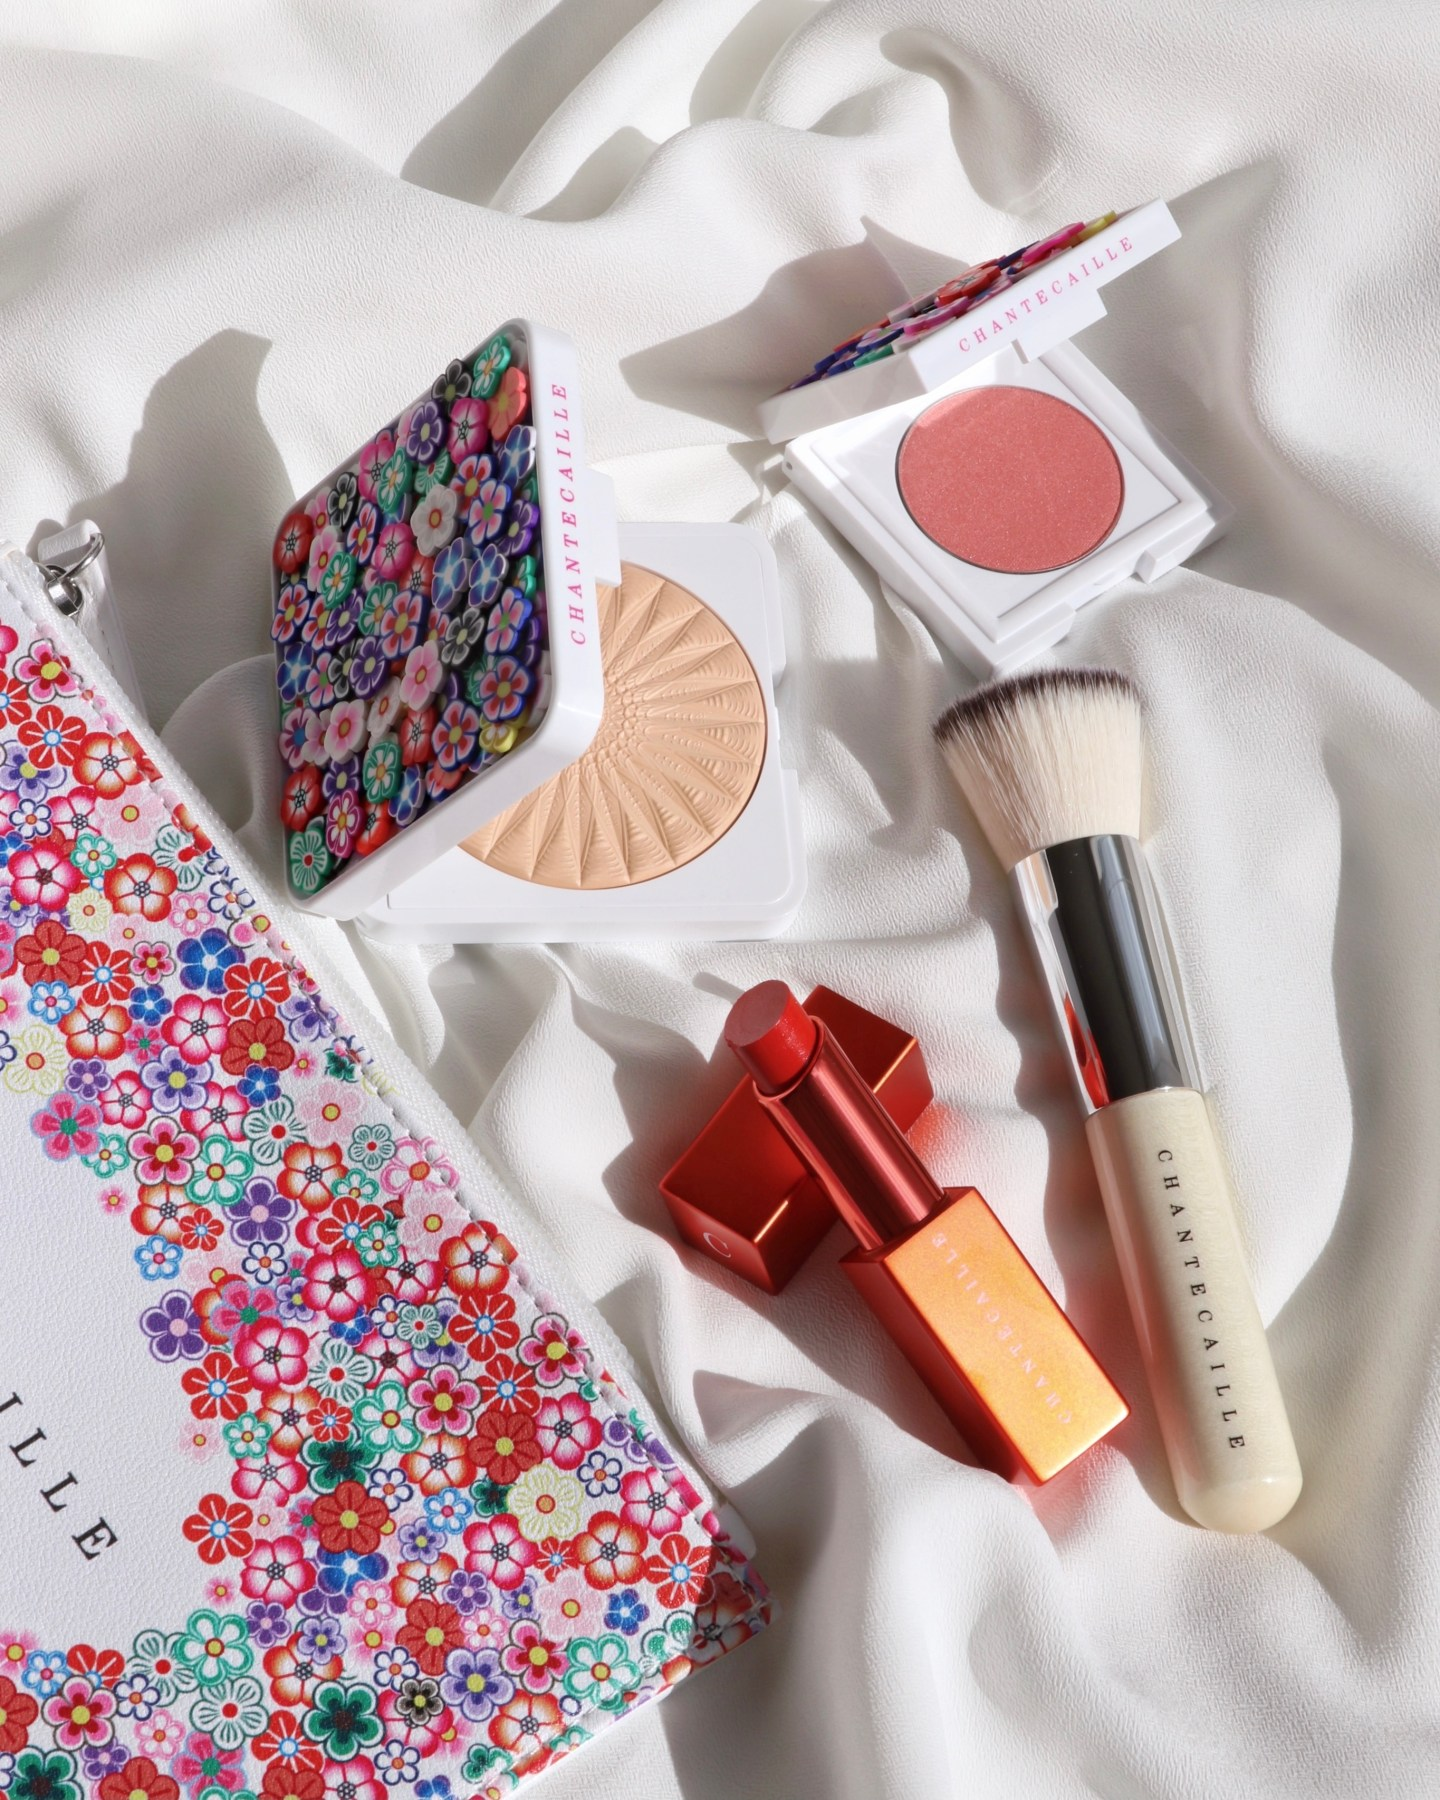 Chantecaille Flower Power Collection Review & Swatches